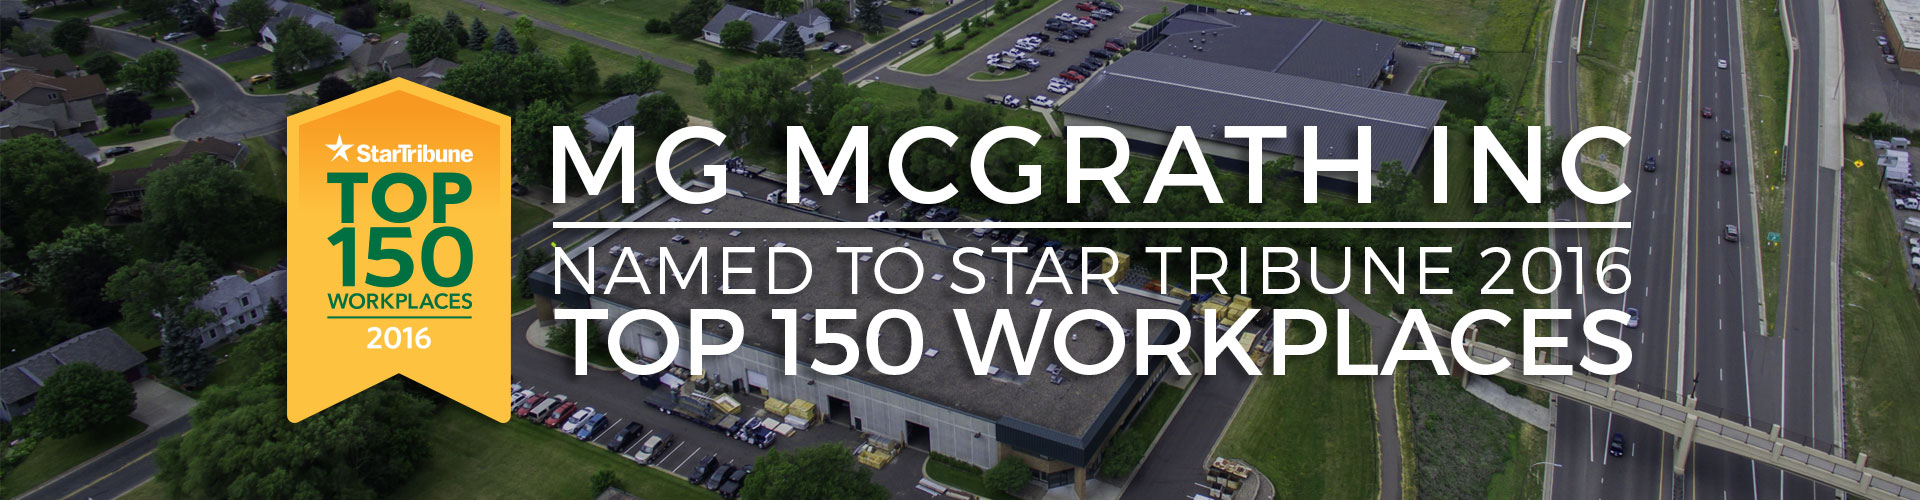 Star Tribune Top 150